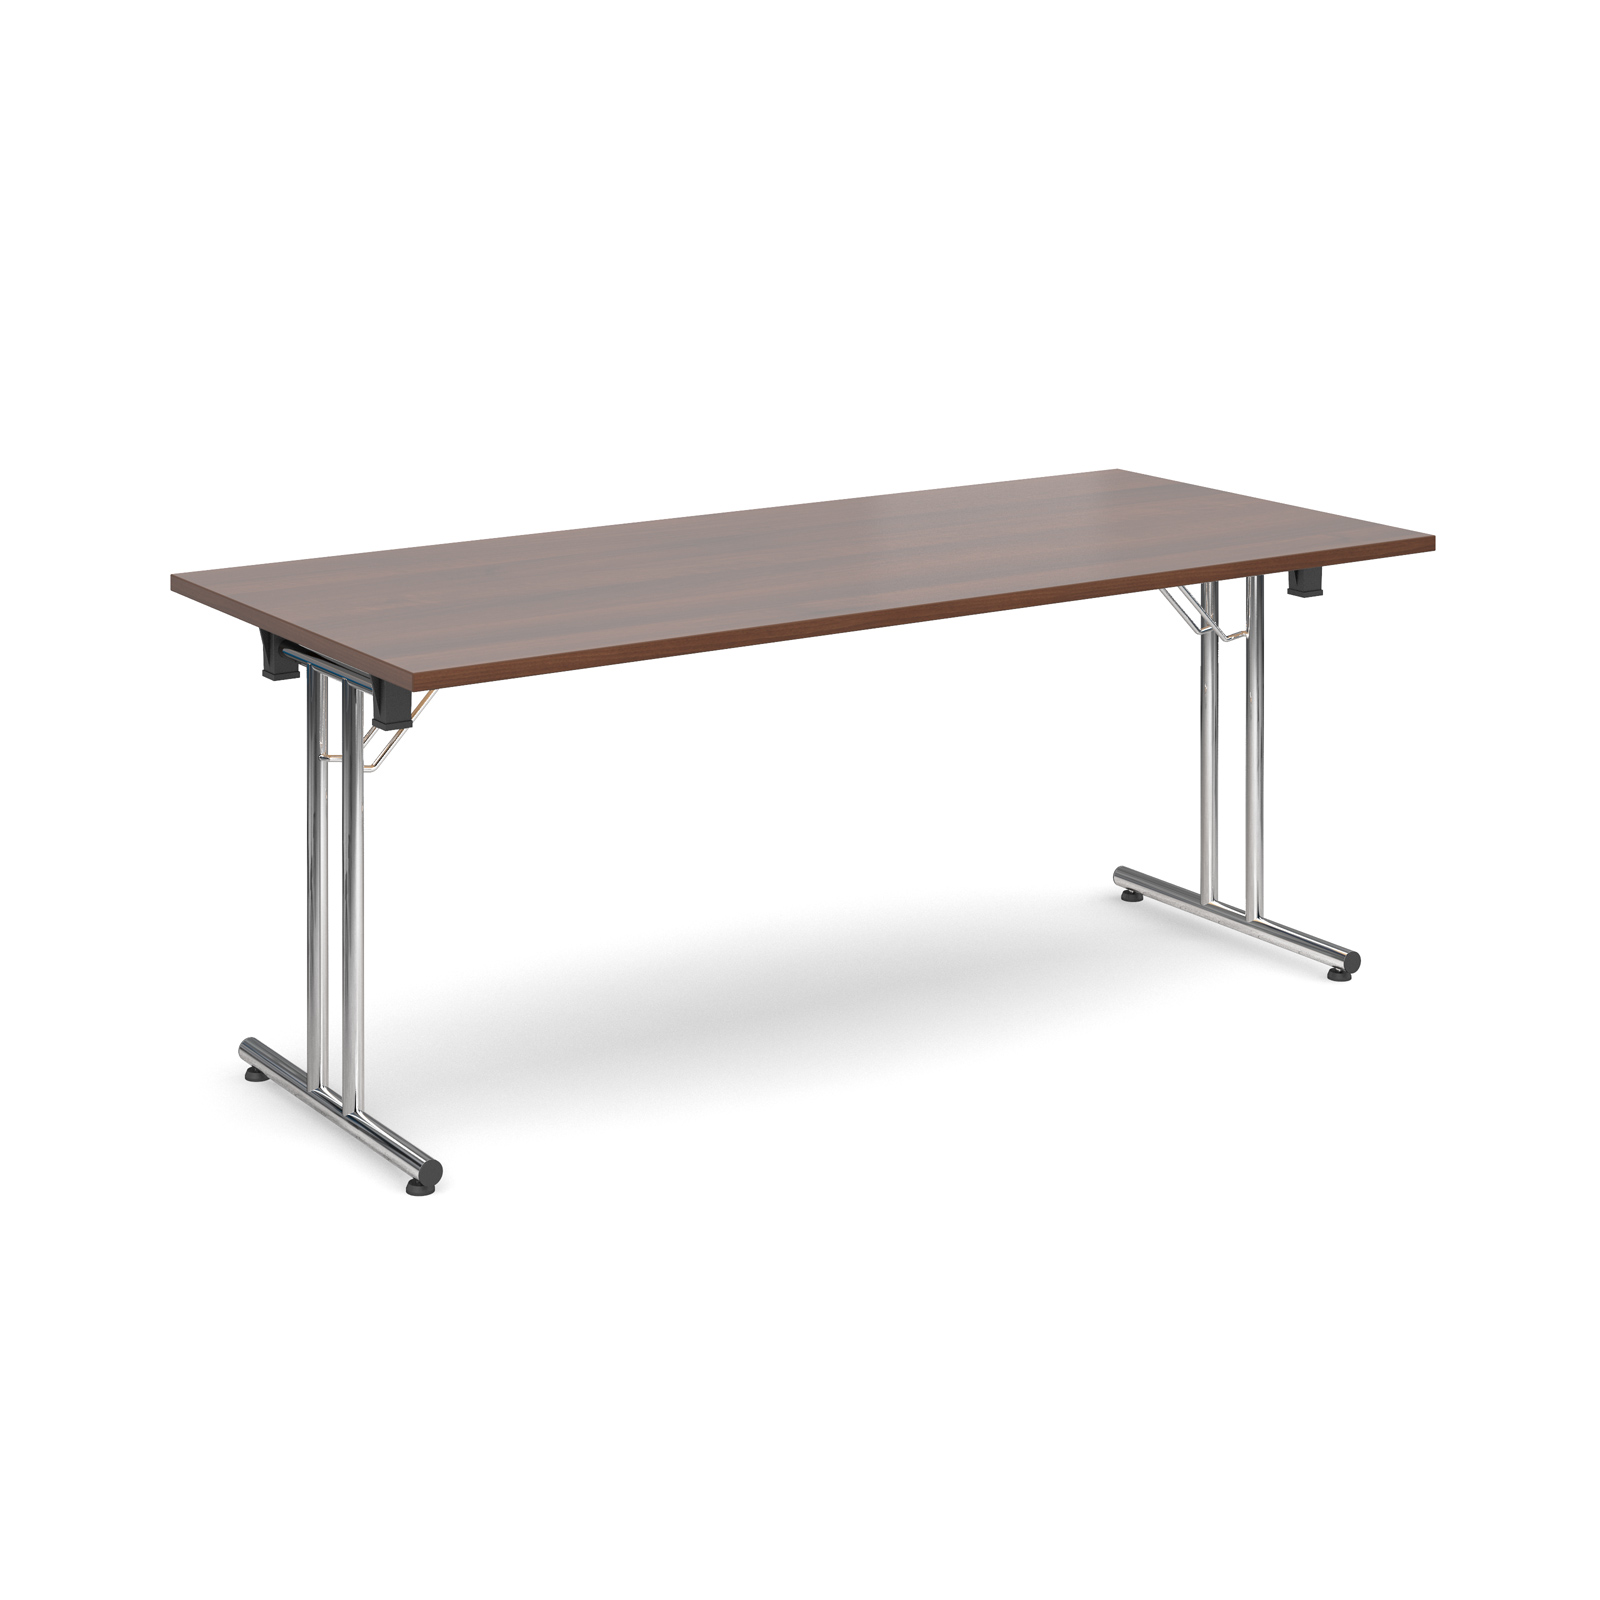 Rectangular deluxe folding leg table 1800mm x 800mm - walnut